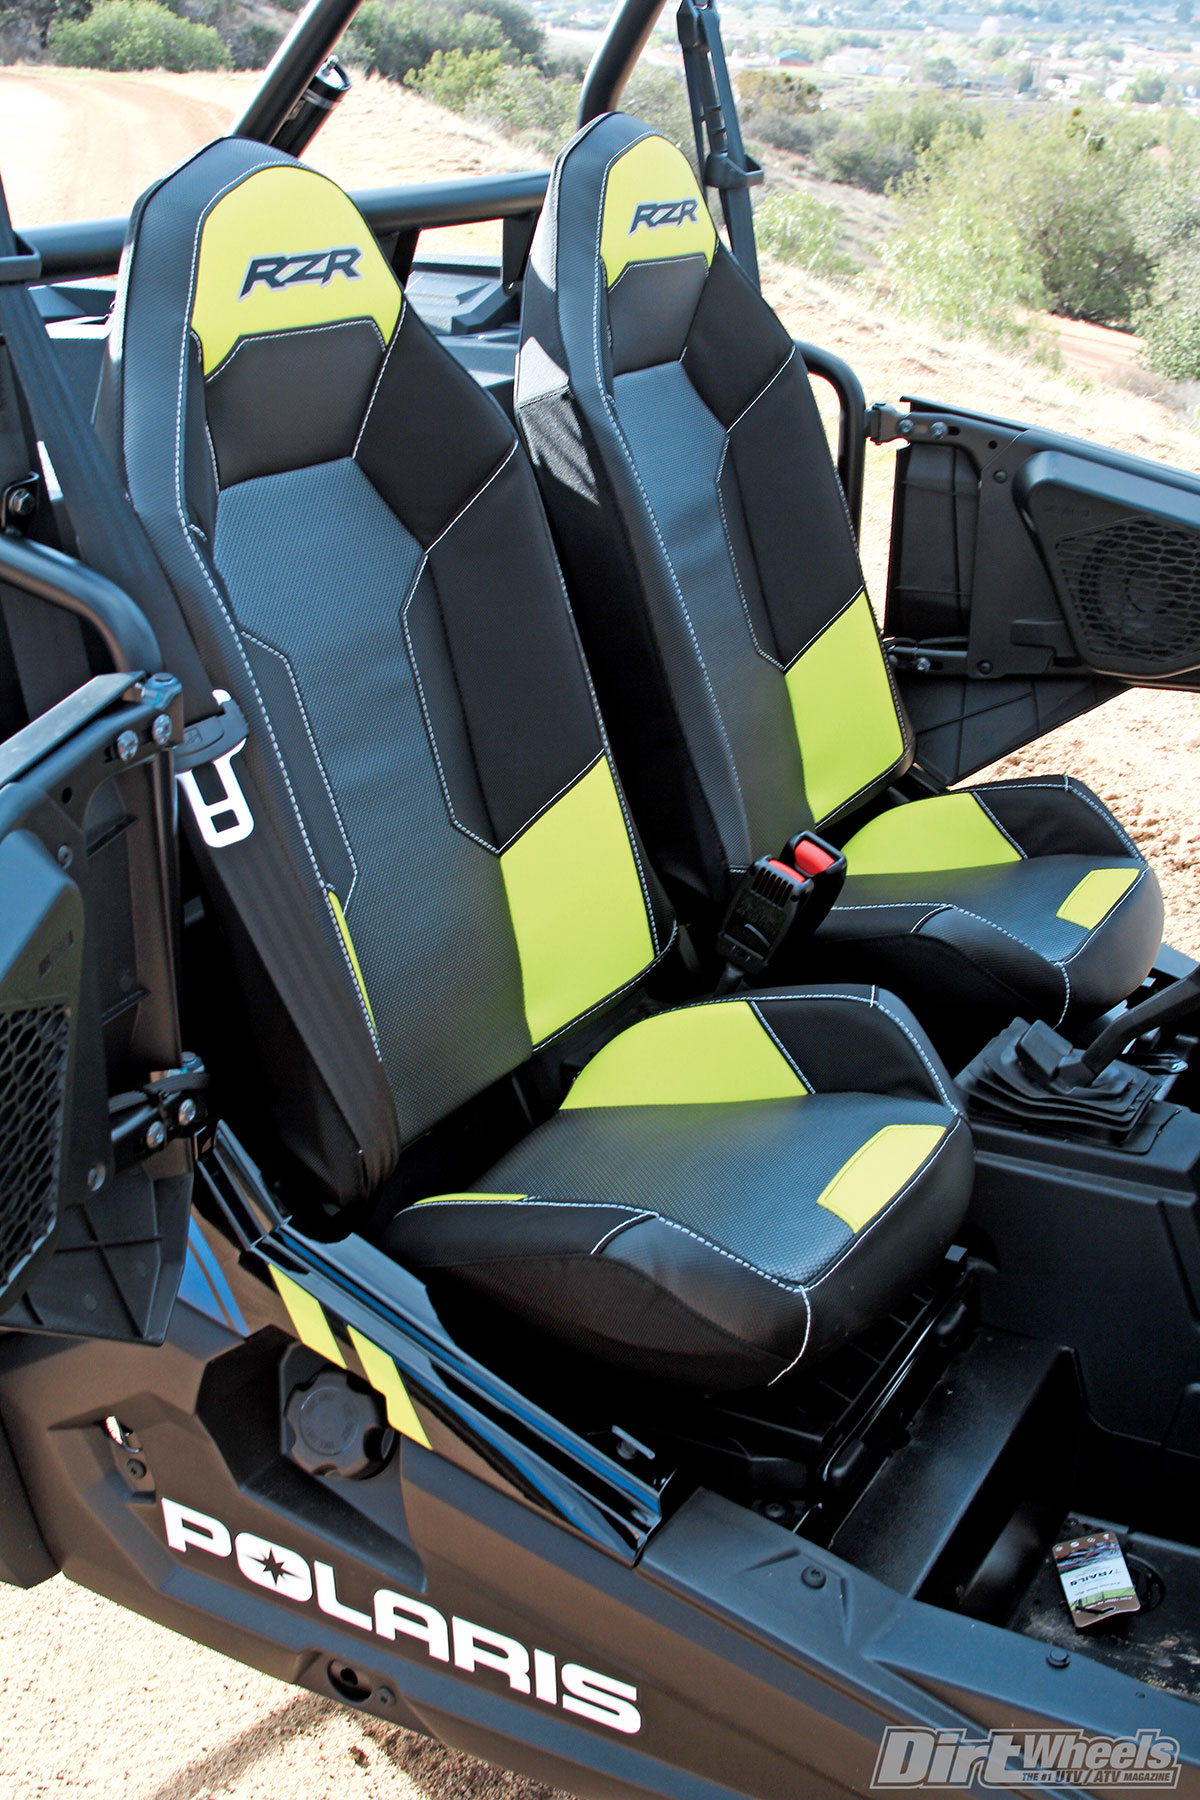 Polaris RZR seats are comfortable and hold you in place pretty well. We would have preferred their harness system instead of just automotive-style seat belts.